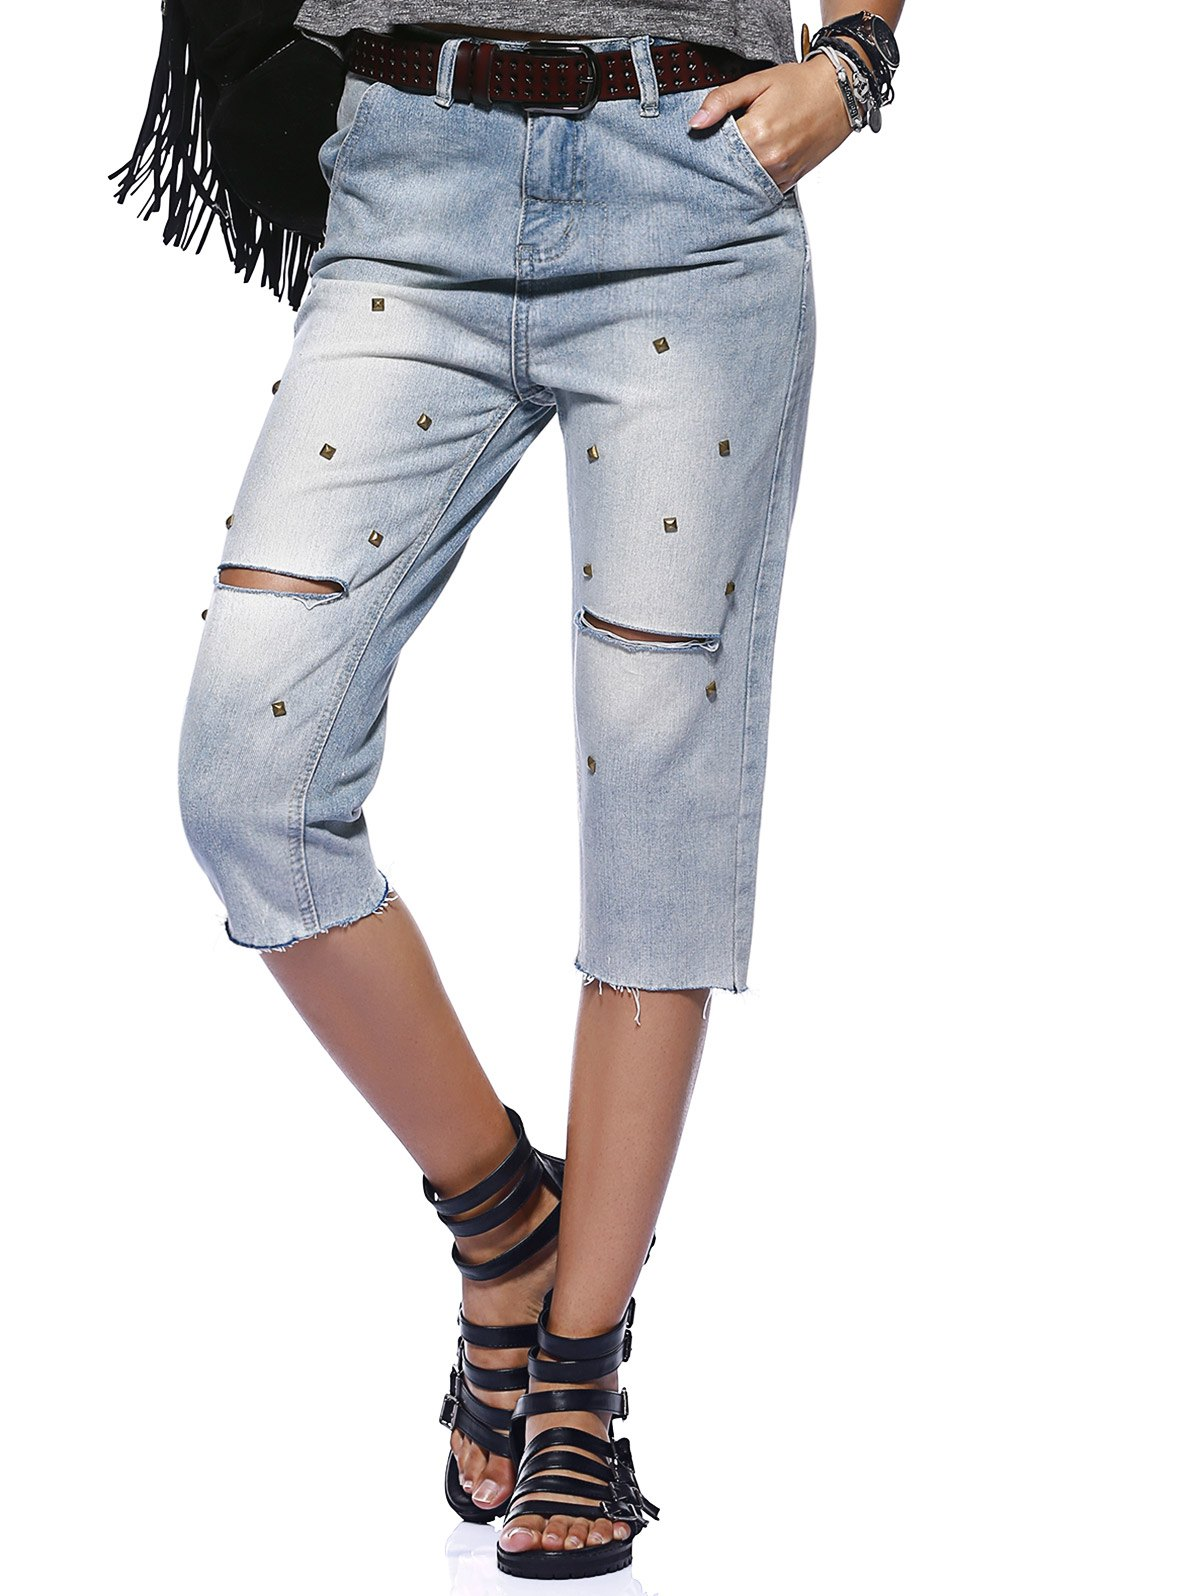 Smiple Rivet Distressed Wash Frayed Hole Cropped Jeans For Women